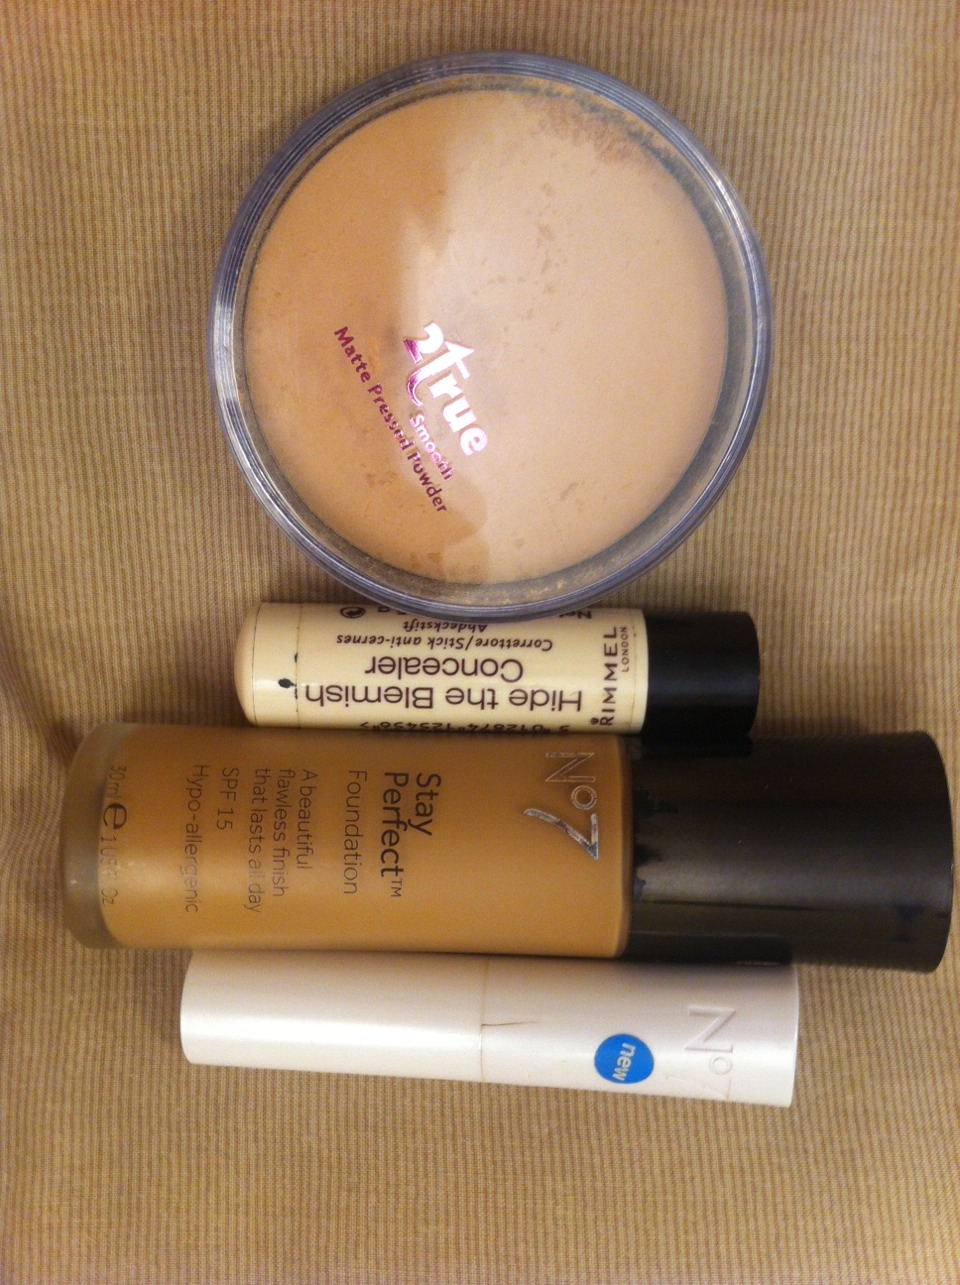 No7 Foundation on Honey only £12 from Boots. I was so glad to find this as I usually spend over £30 on foundation.  No7 concealer in Honey for only £6 at Boots. usually I spend £12 Rimmel concealer on honey from boots £3 2true pressed powder for £1 from PoundShop